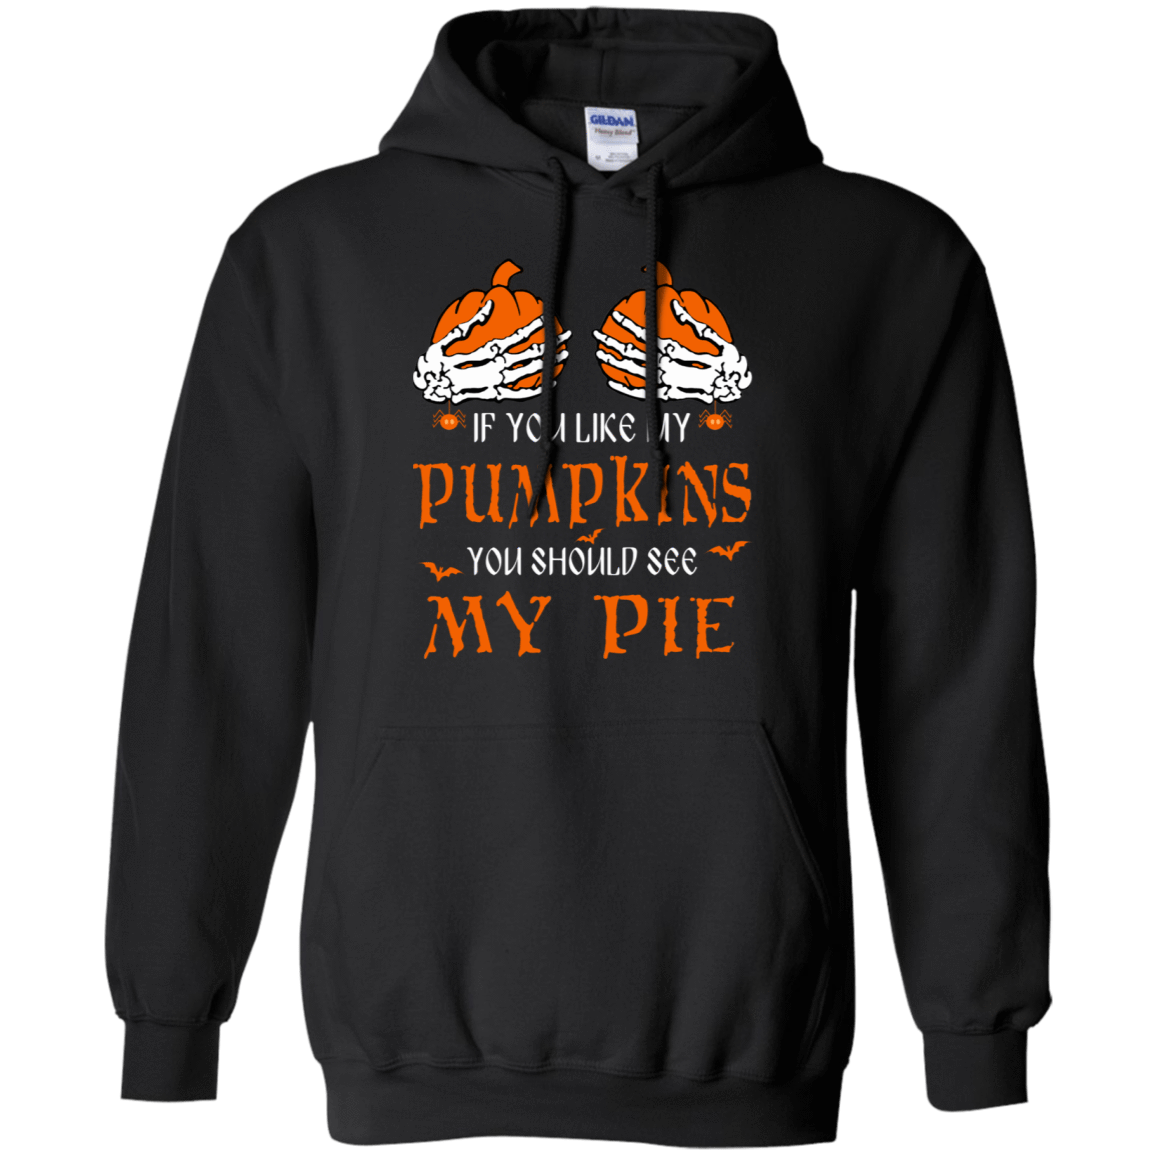 If You Like My Pumpkins You Should See My Pie T-Shirts, Hoodies, Tank 541-4740-79240725-23087 - Tee Ript